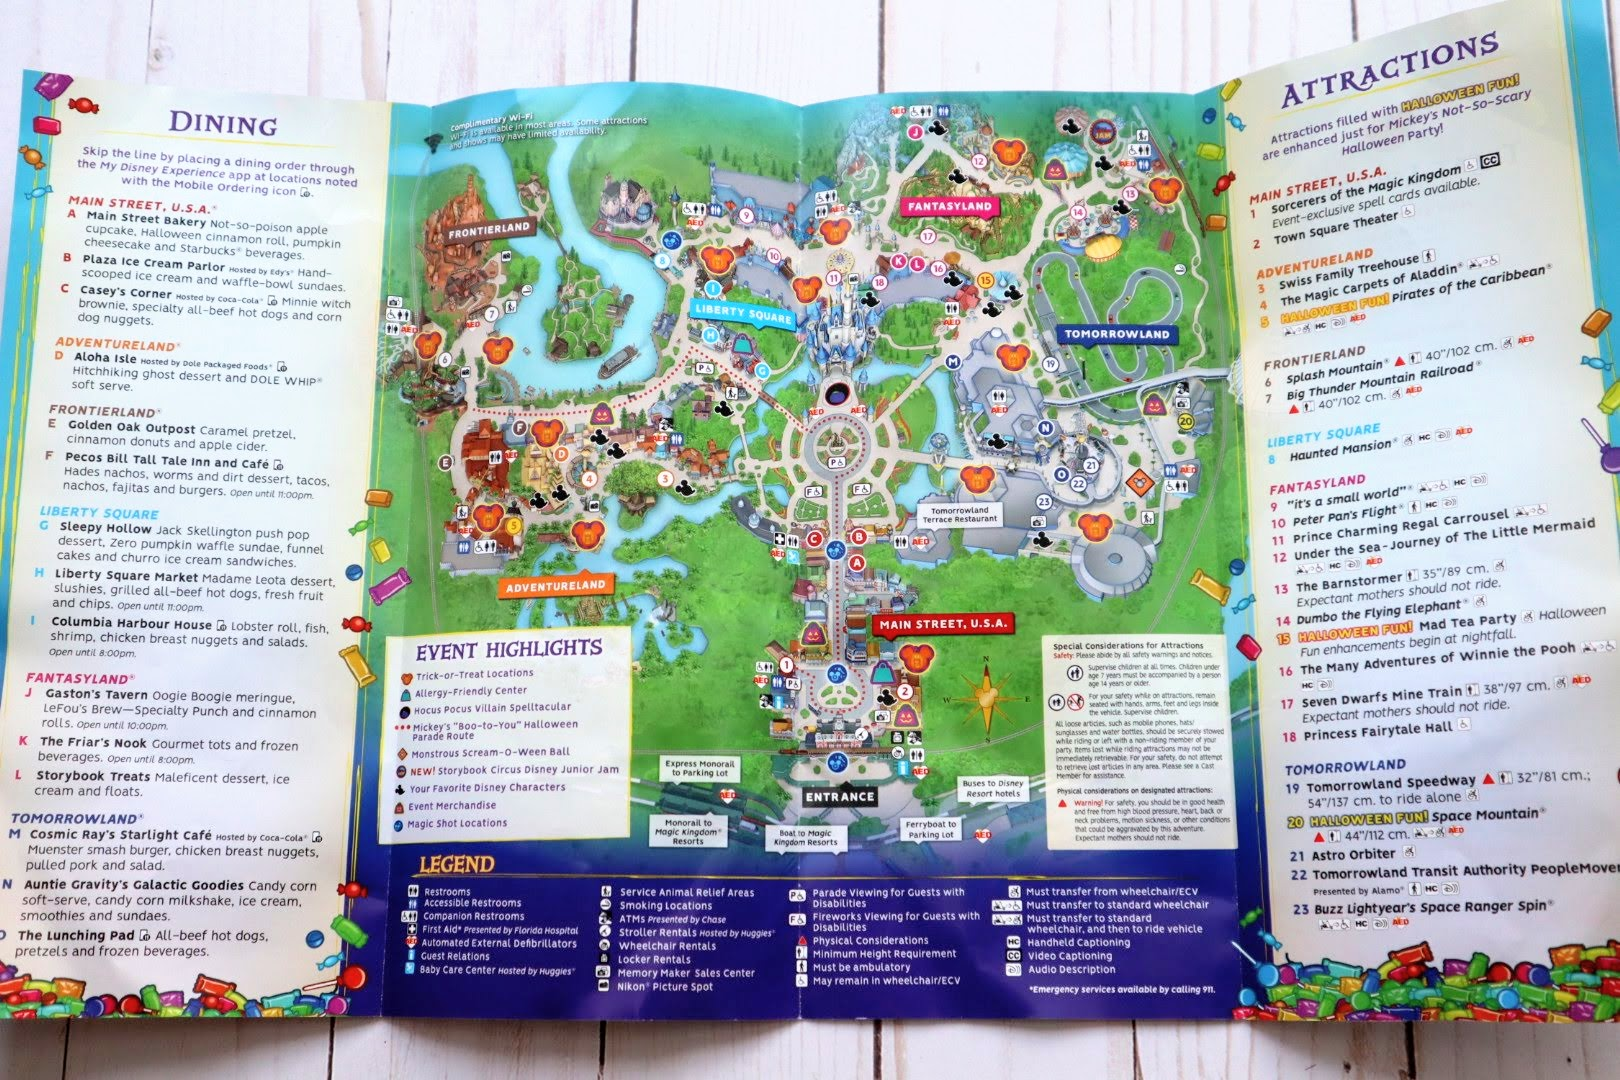 Attractions, Food, and More